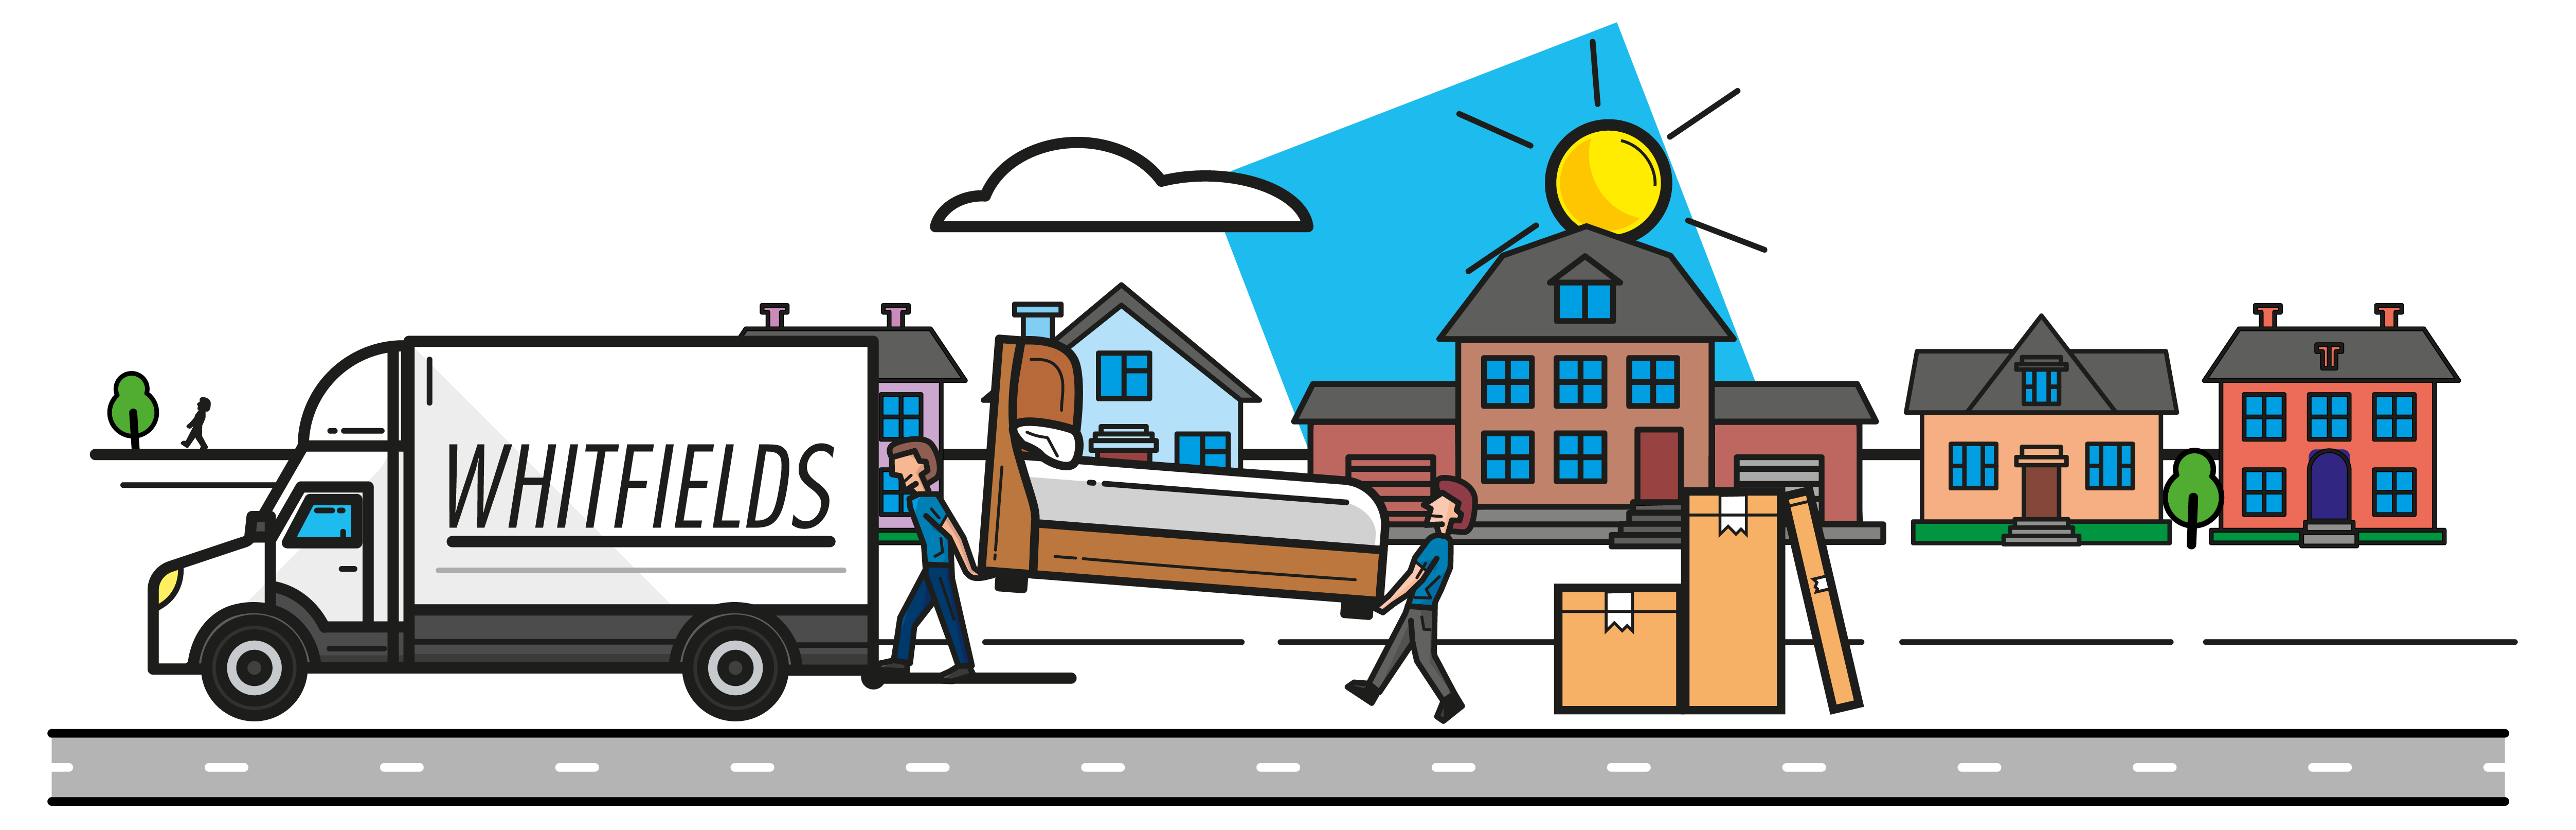 Header image showing personal removals